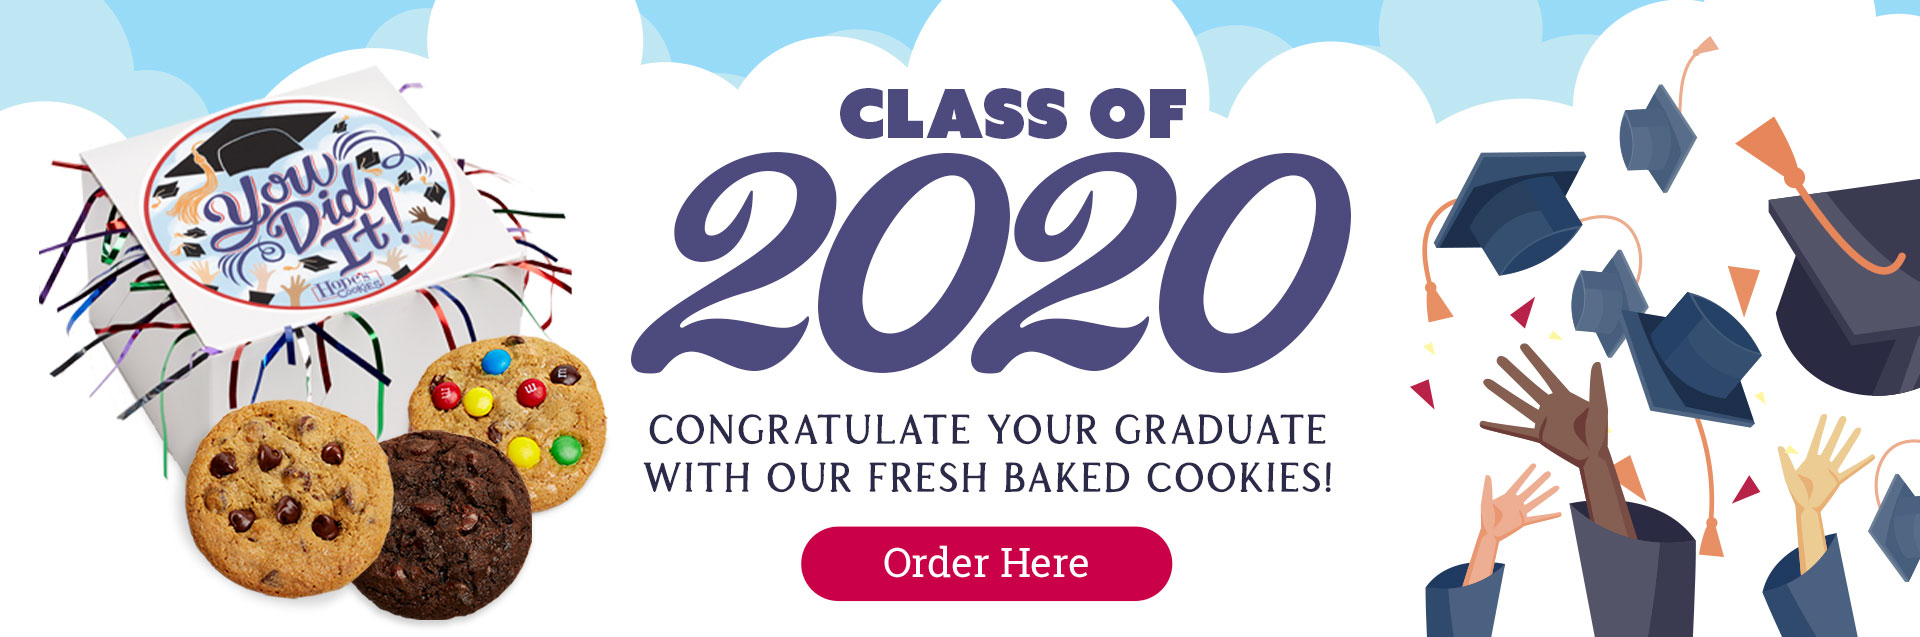 Congratulate your graduate with fresh baked cookies